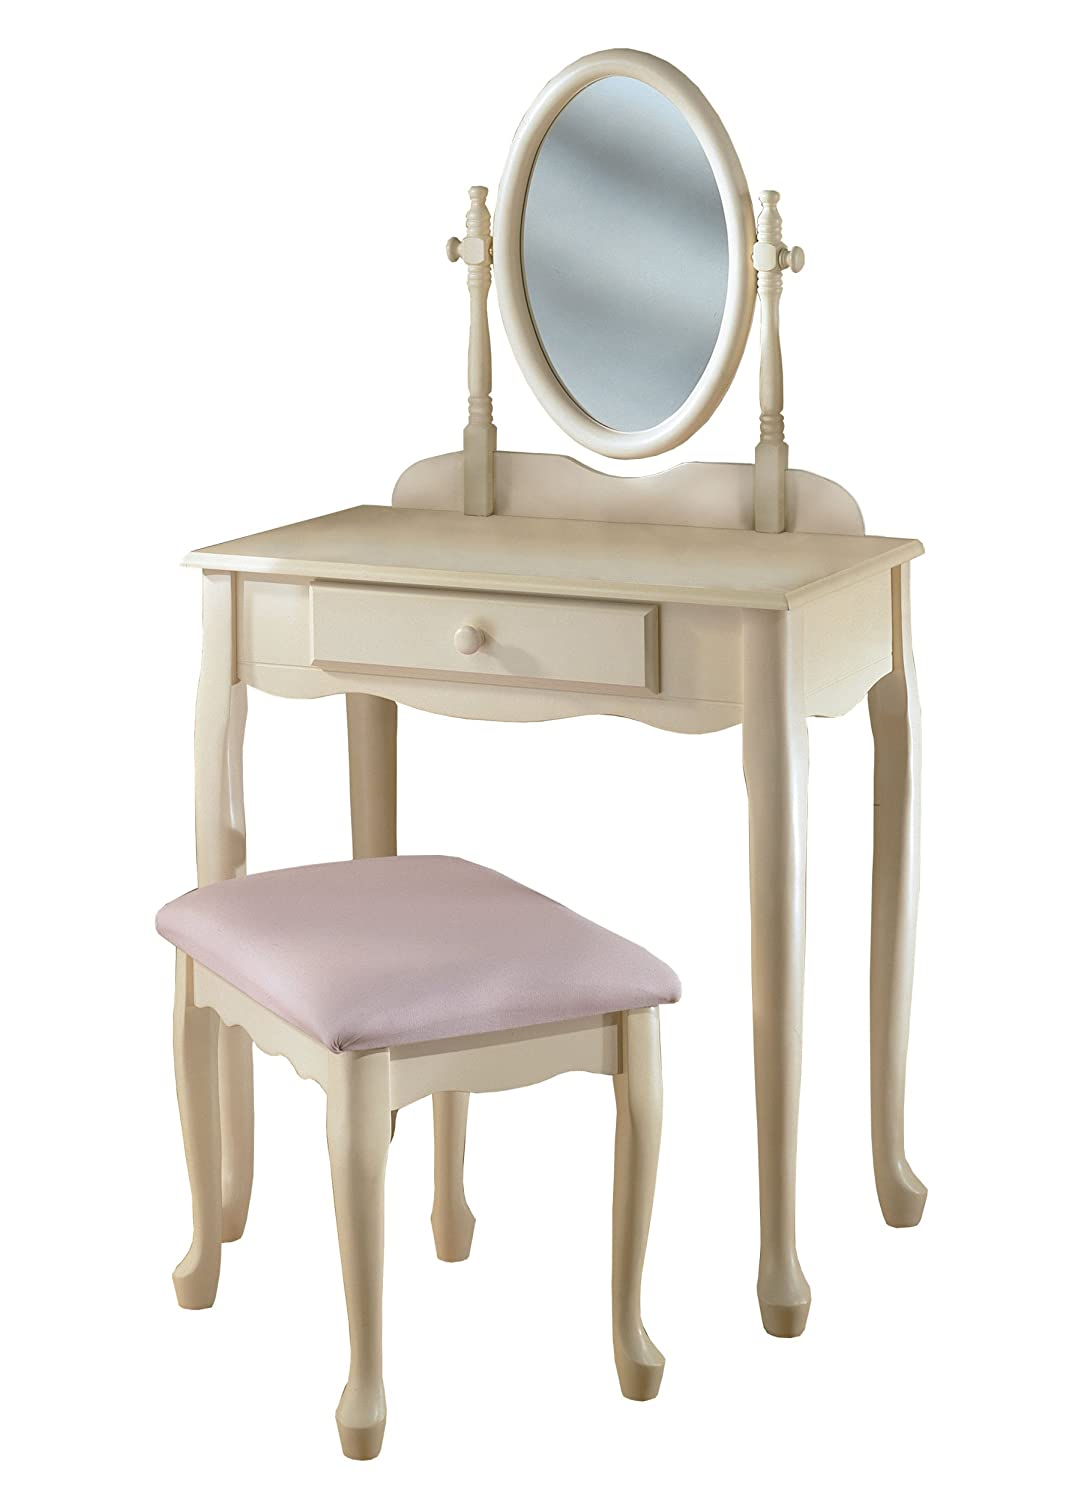 mirror dress trays me mirrored and silver with party tray lights table good game jlo amazon vanity plate thrones modern corner dresser costco dressing of fair